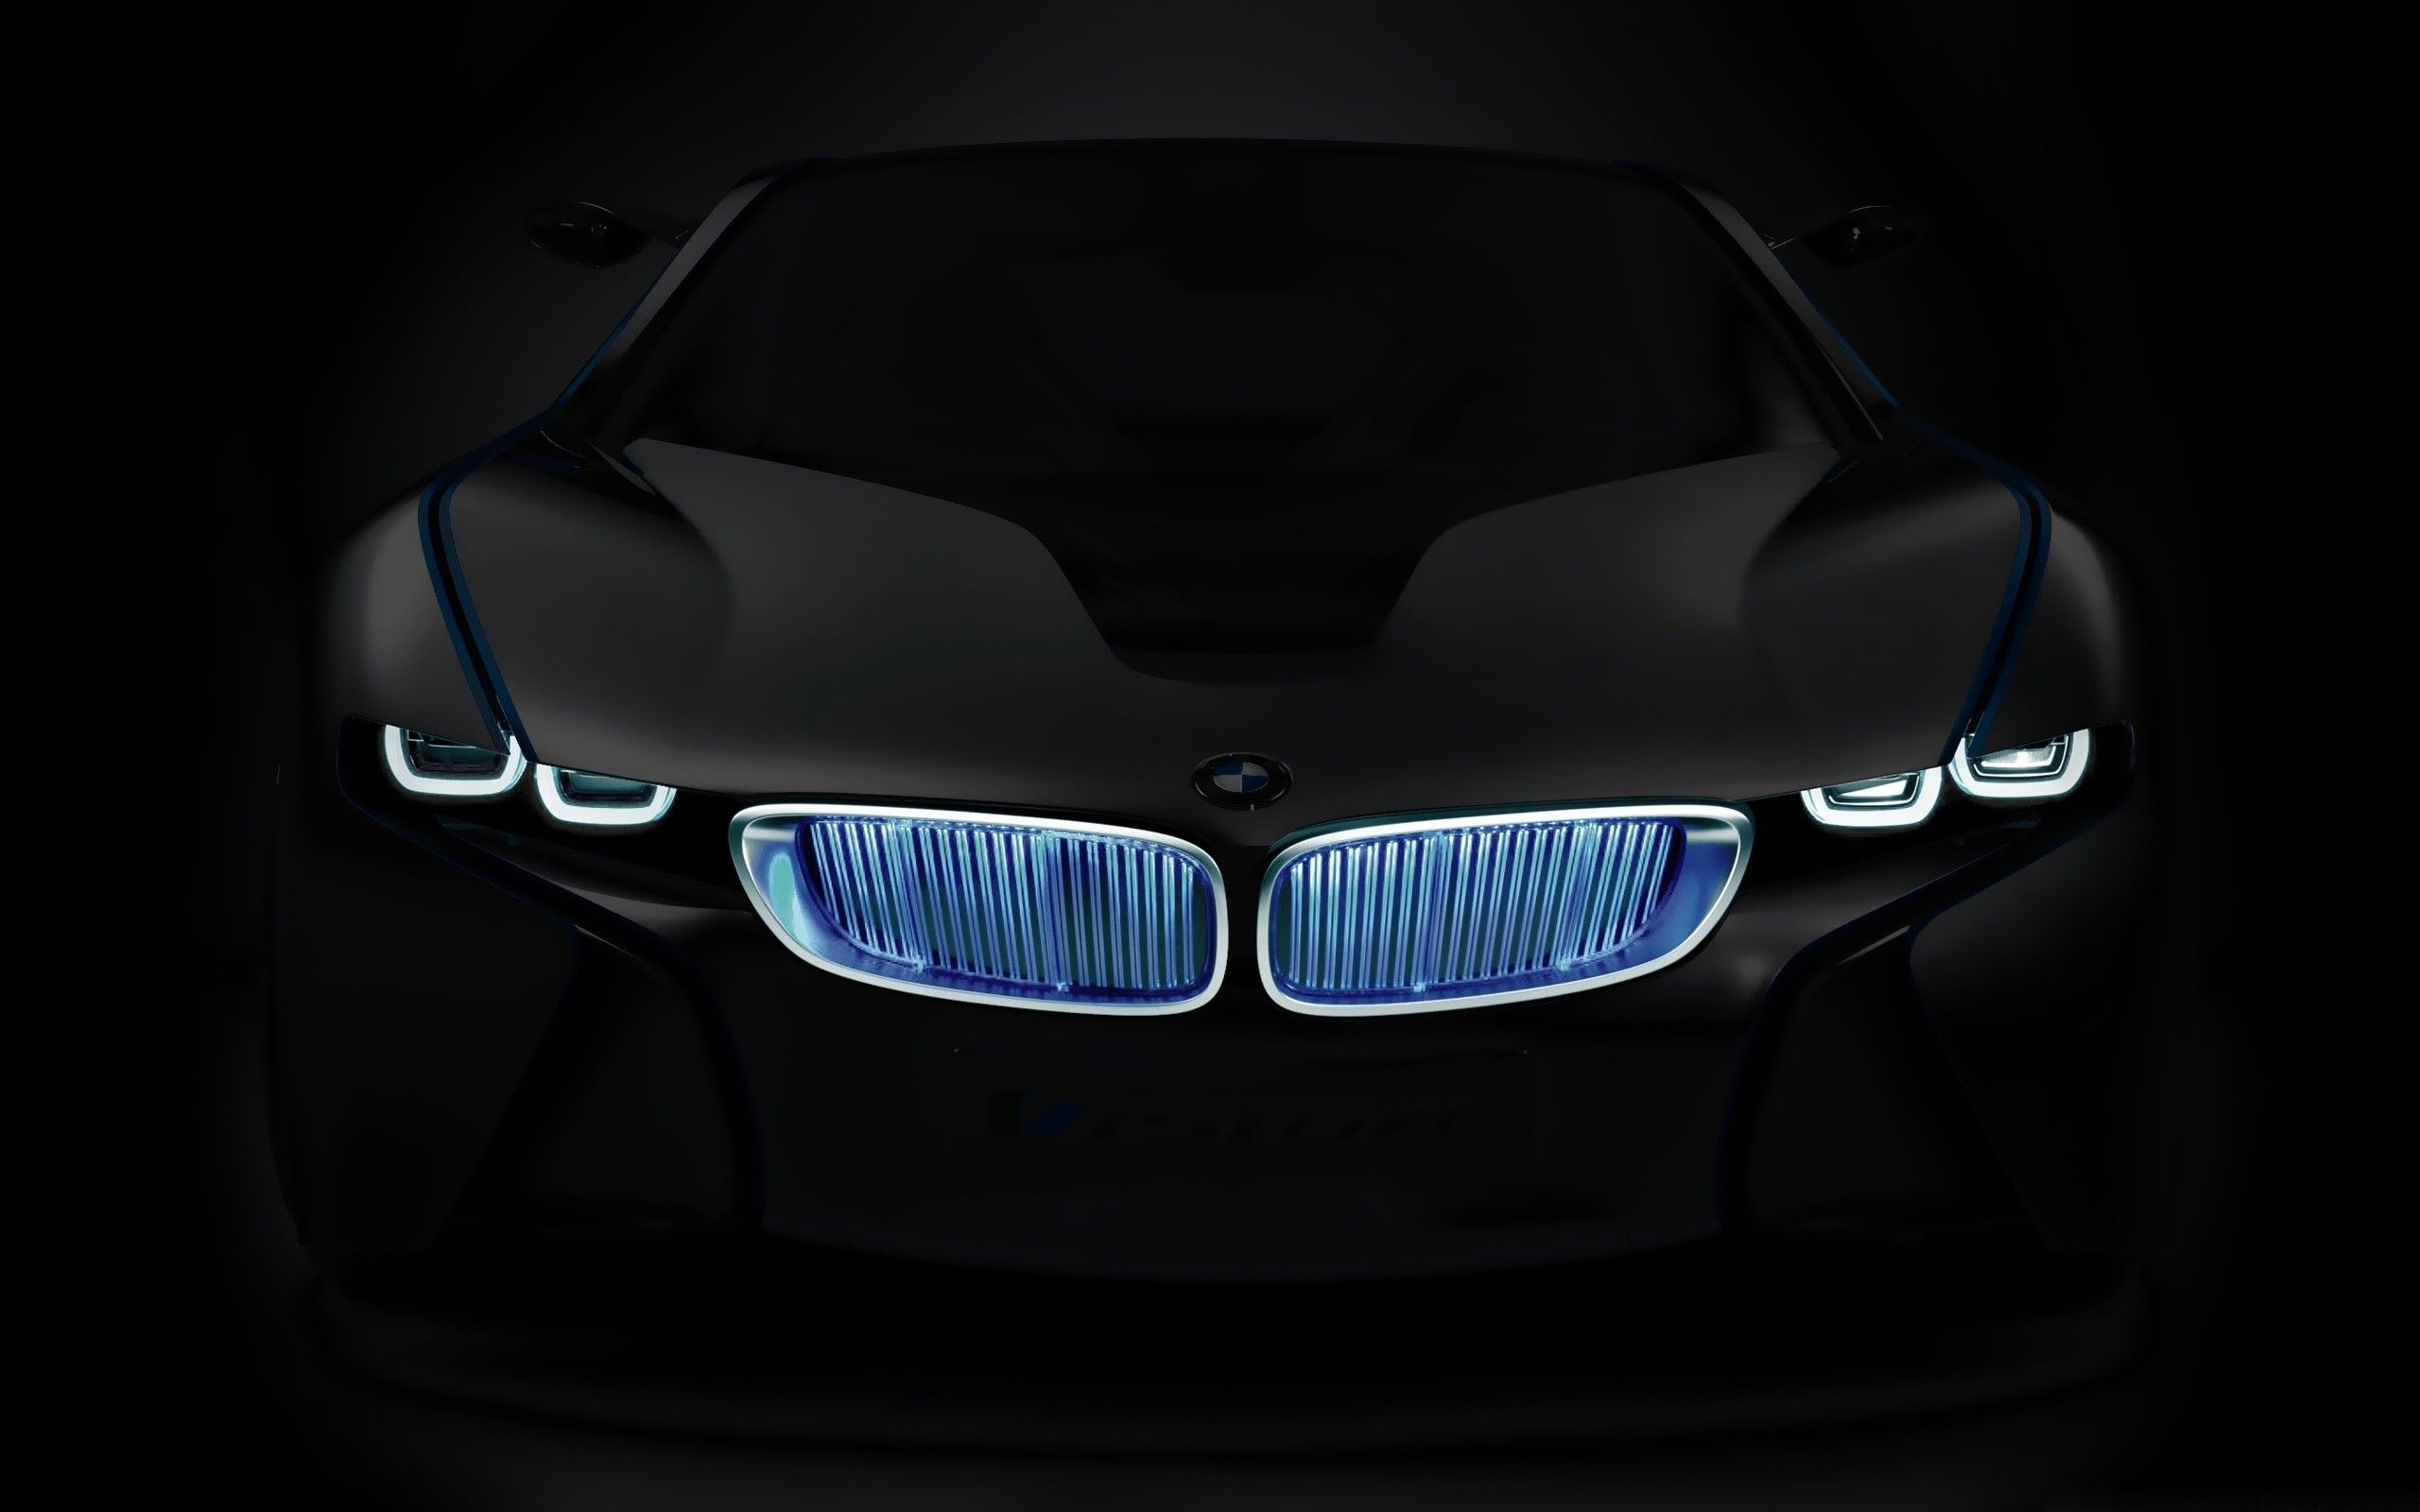 139 bmw i8 hd wallpapers | background images - wallpaper abyss